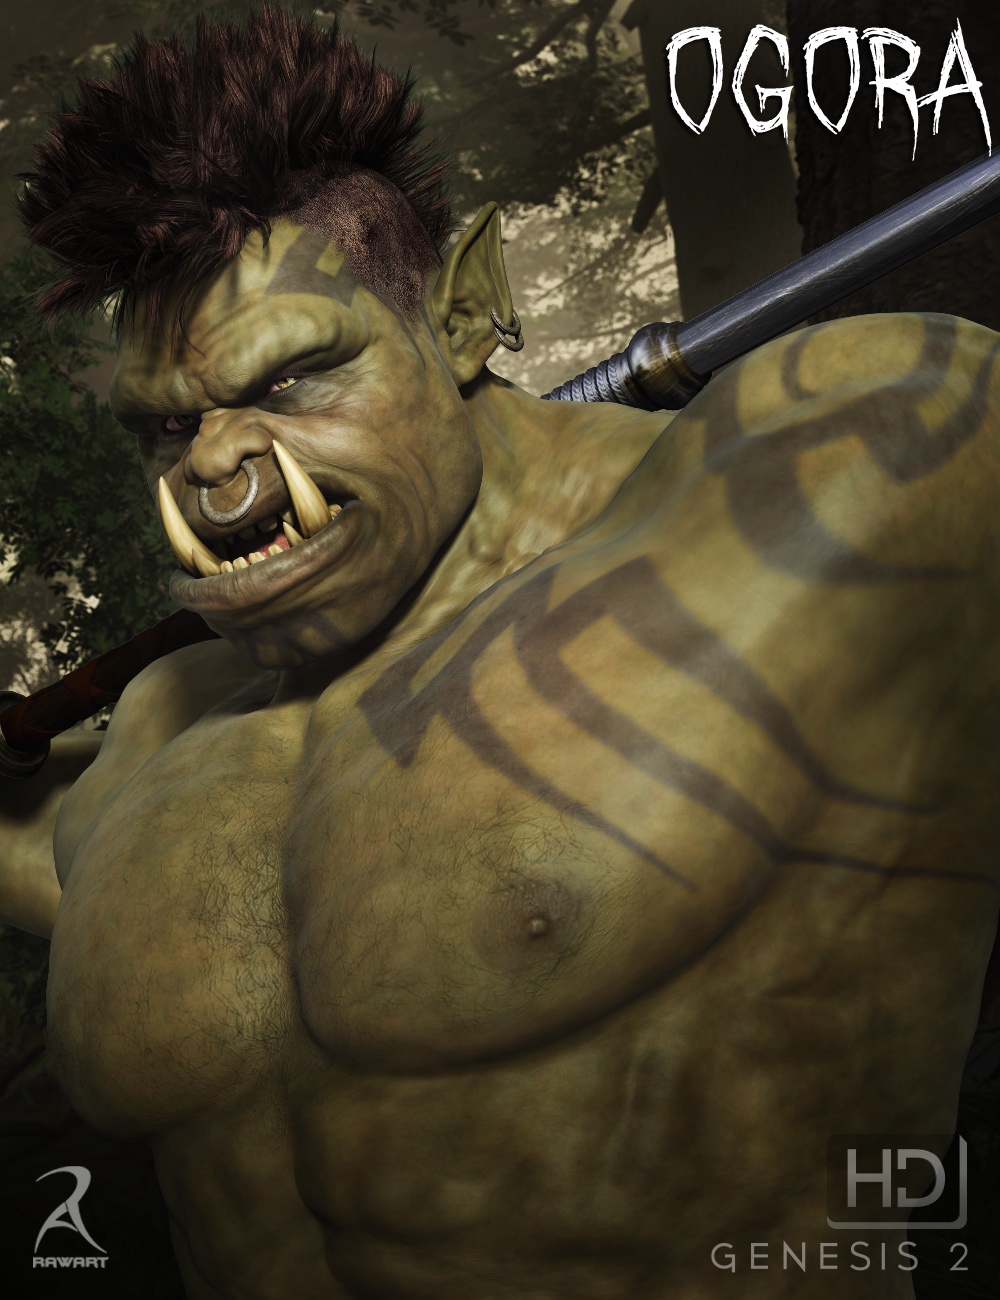 Ogora the Orc HD by: RawArt, 3D Models by Daz 3D